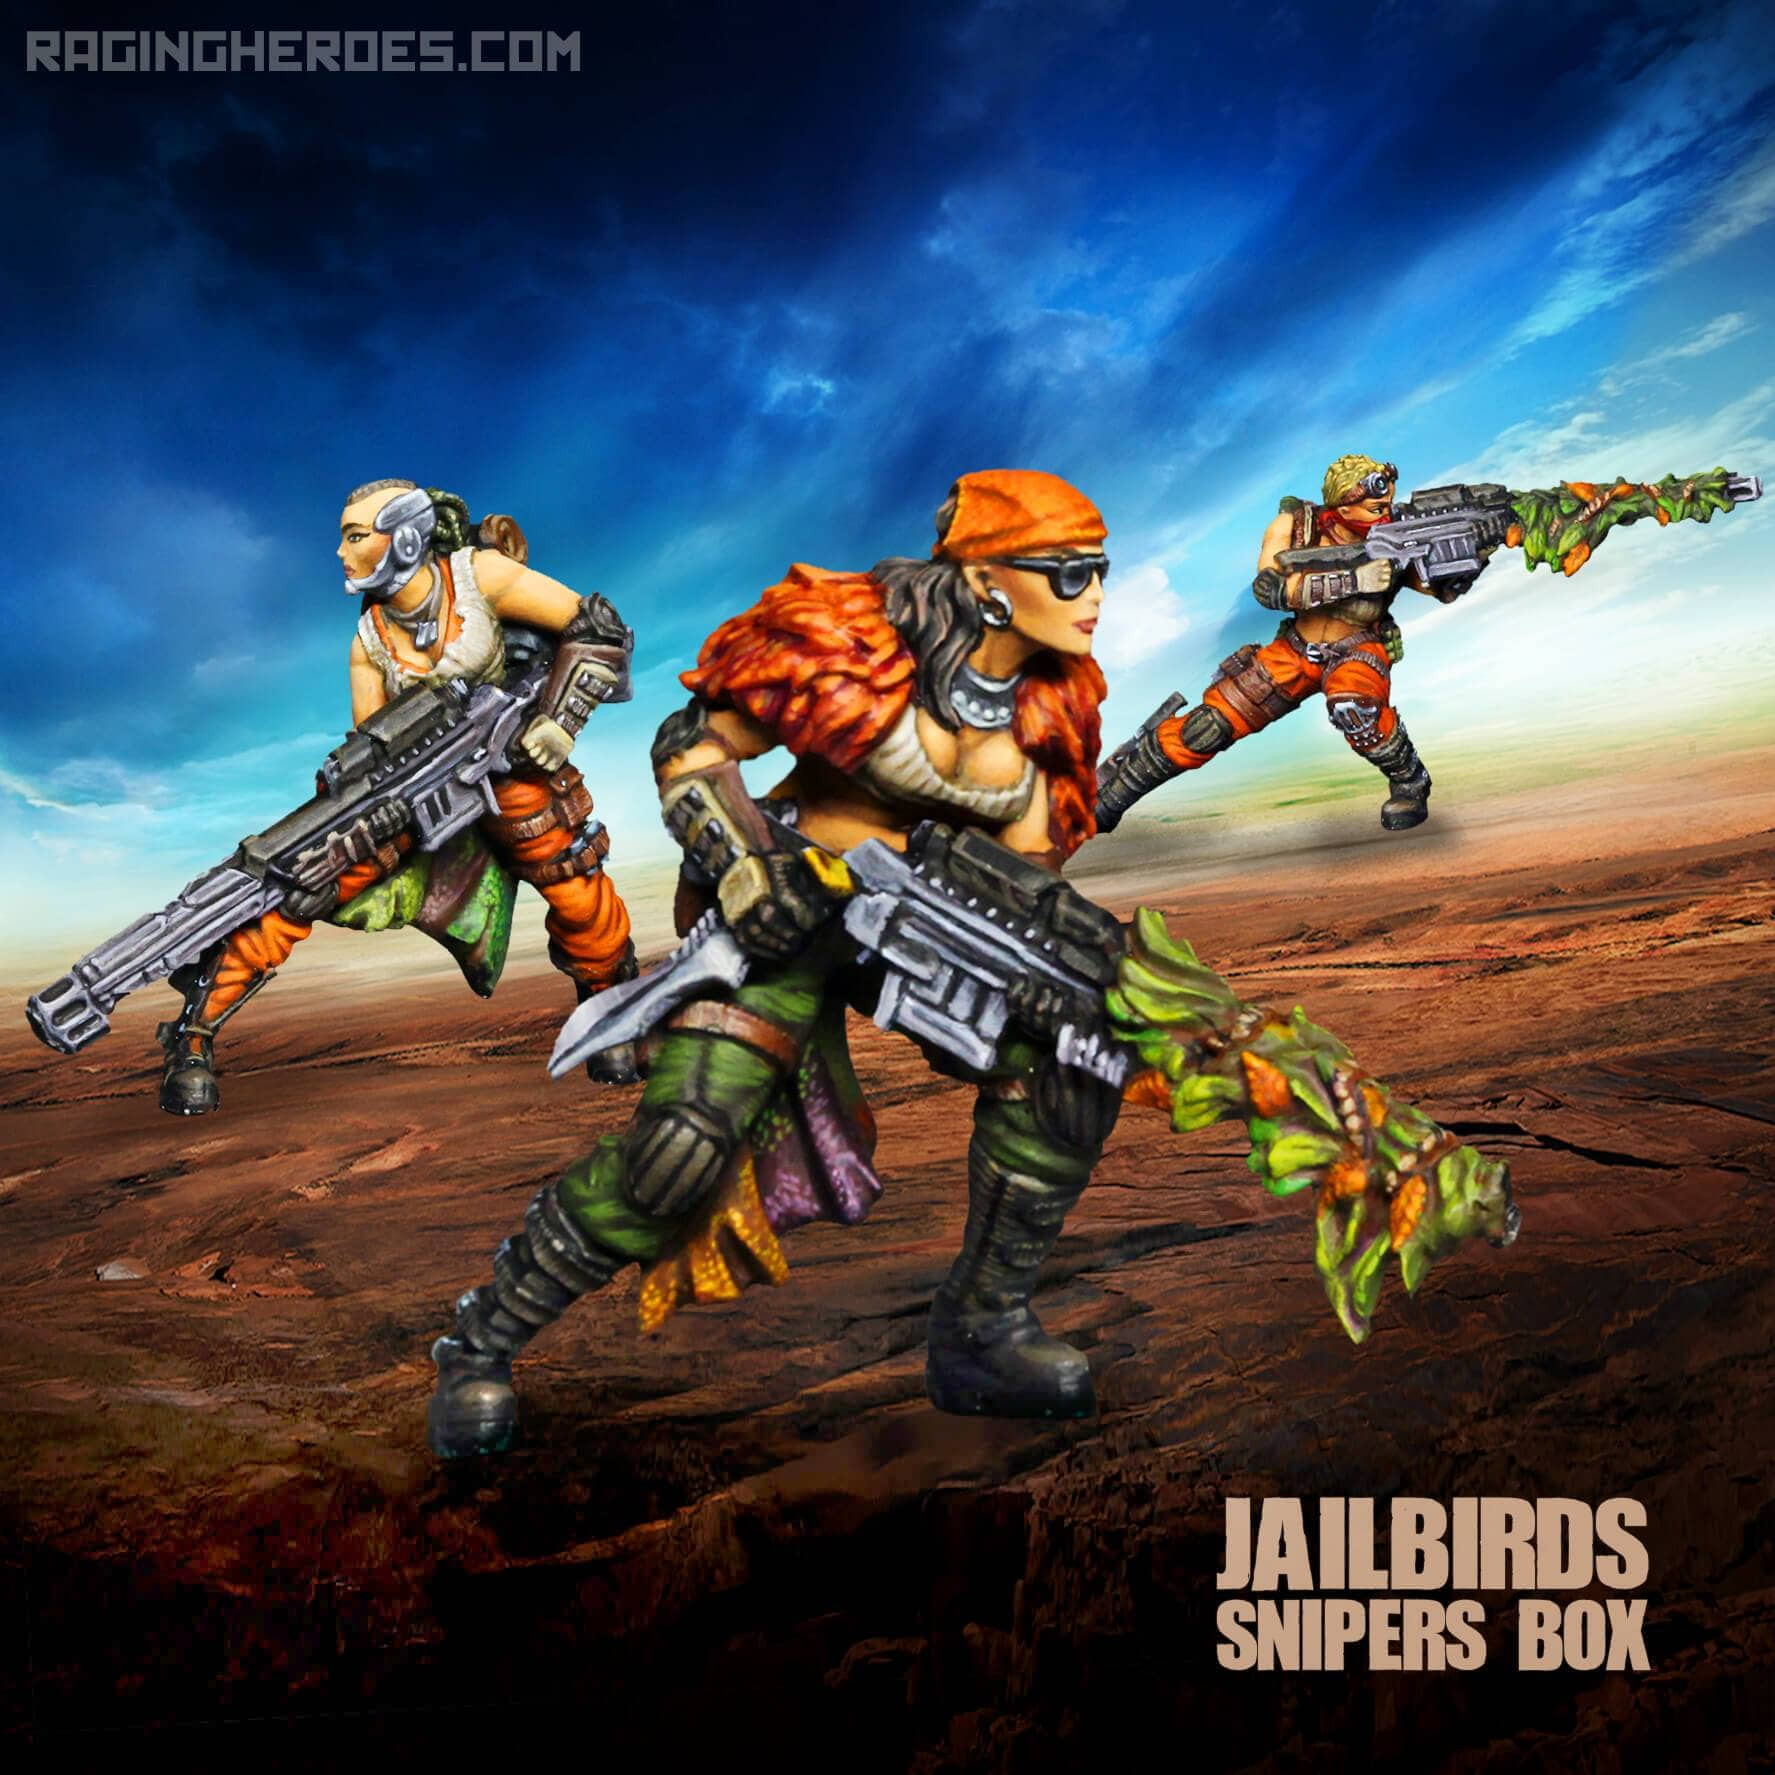 Jailbirds Sniper Unit - Raging Heroes